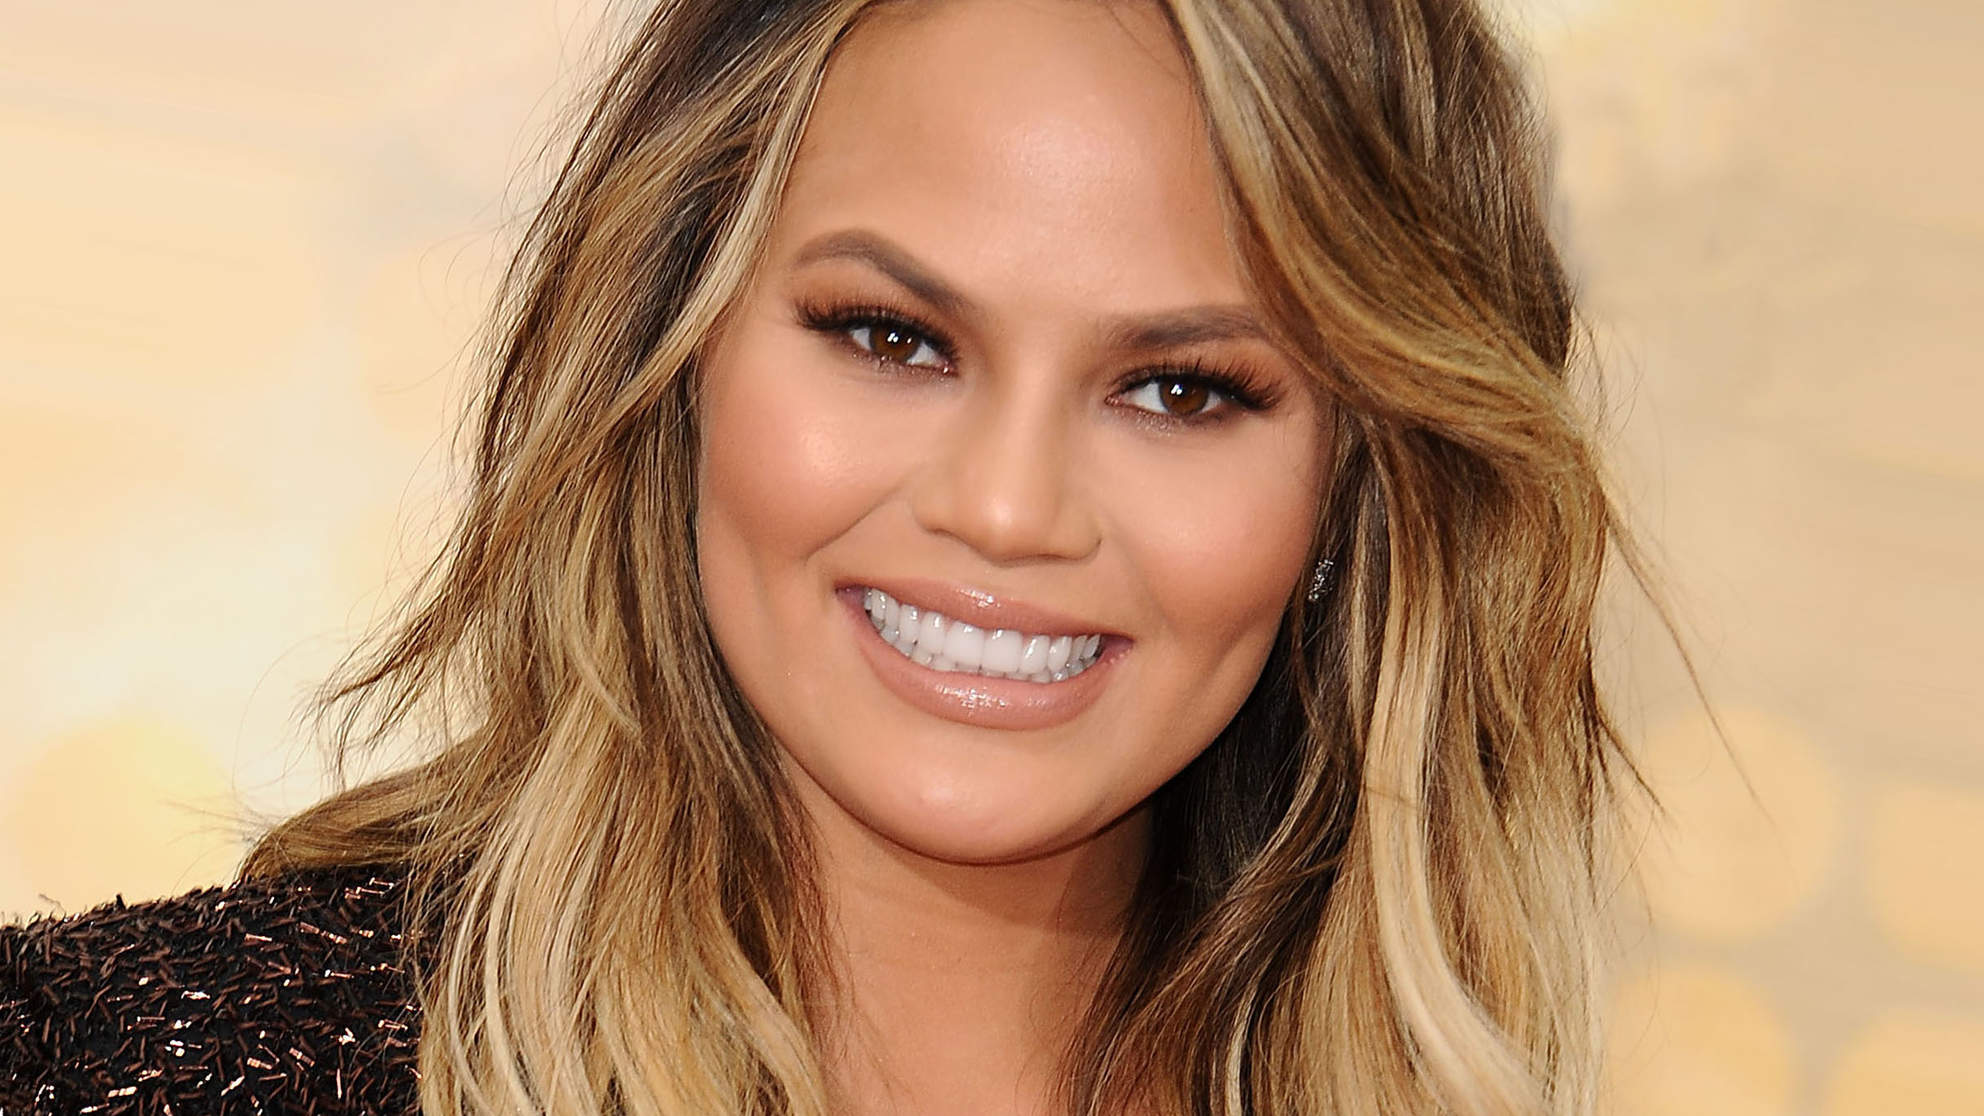 Chrissy Teigen Got Super Real About Her 'Period Skin' Pimples on Snapchat